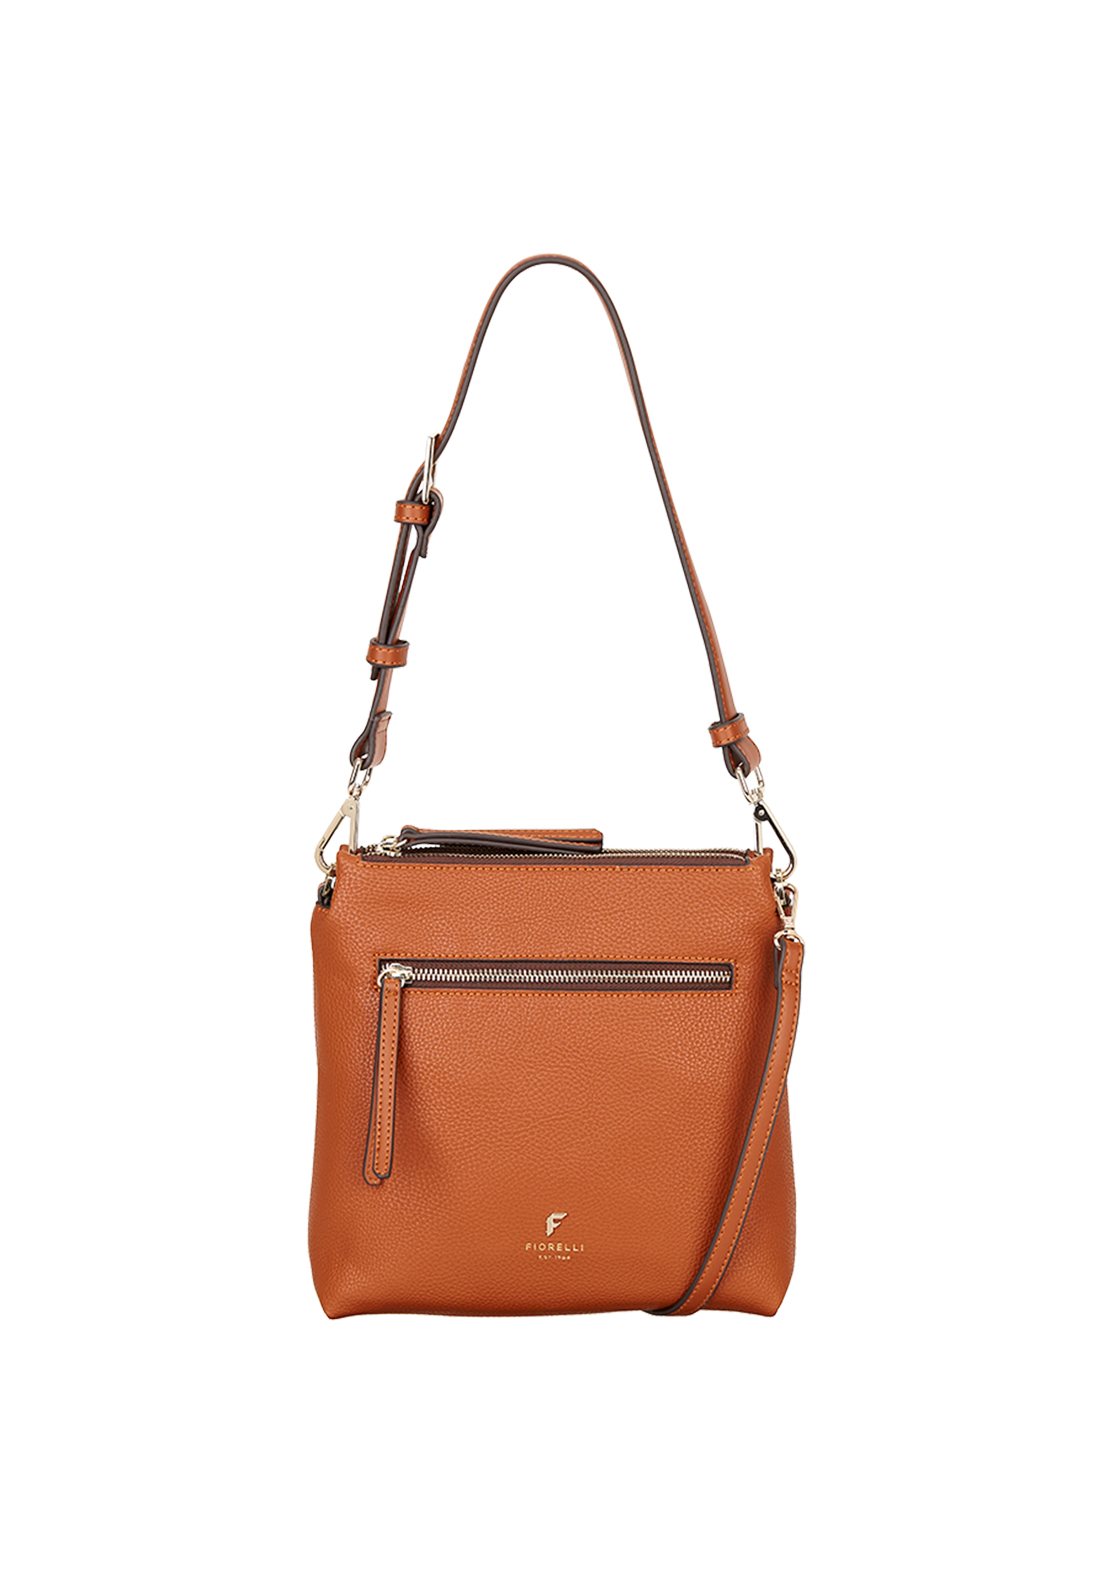 Fiorelli Elliot Casual Mini Crossbody Bag, Tan